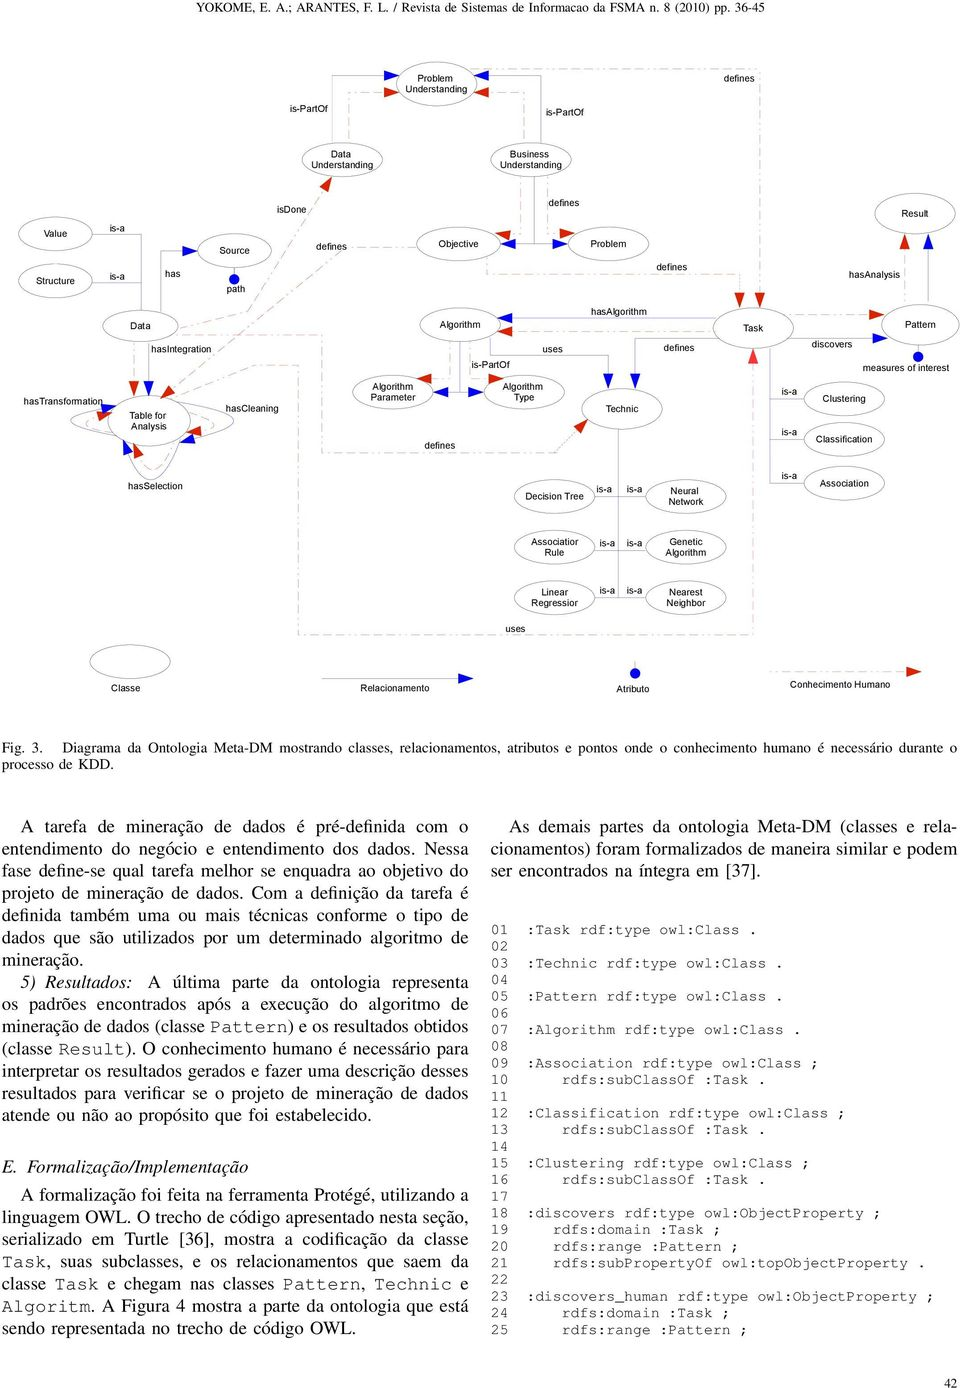 Decision Tree Neural Network Association Associatior Rule Genetic Algorithm Linear Regressior Nearest Neighbor uses Classe Relacionamento Atributo Conhecimento Humano Fig. 3.